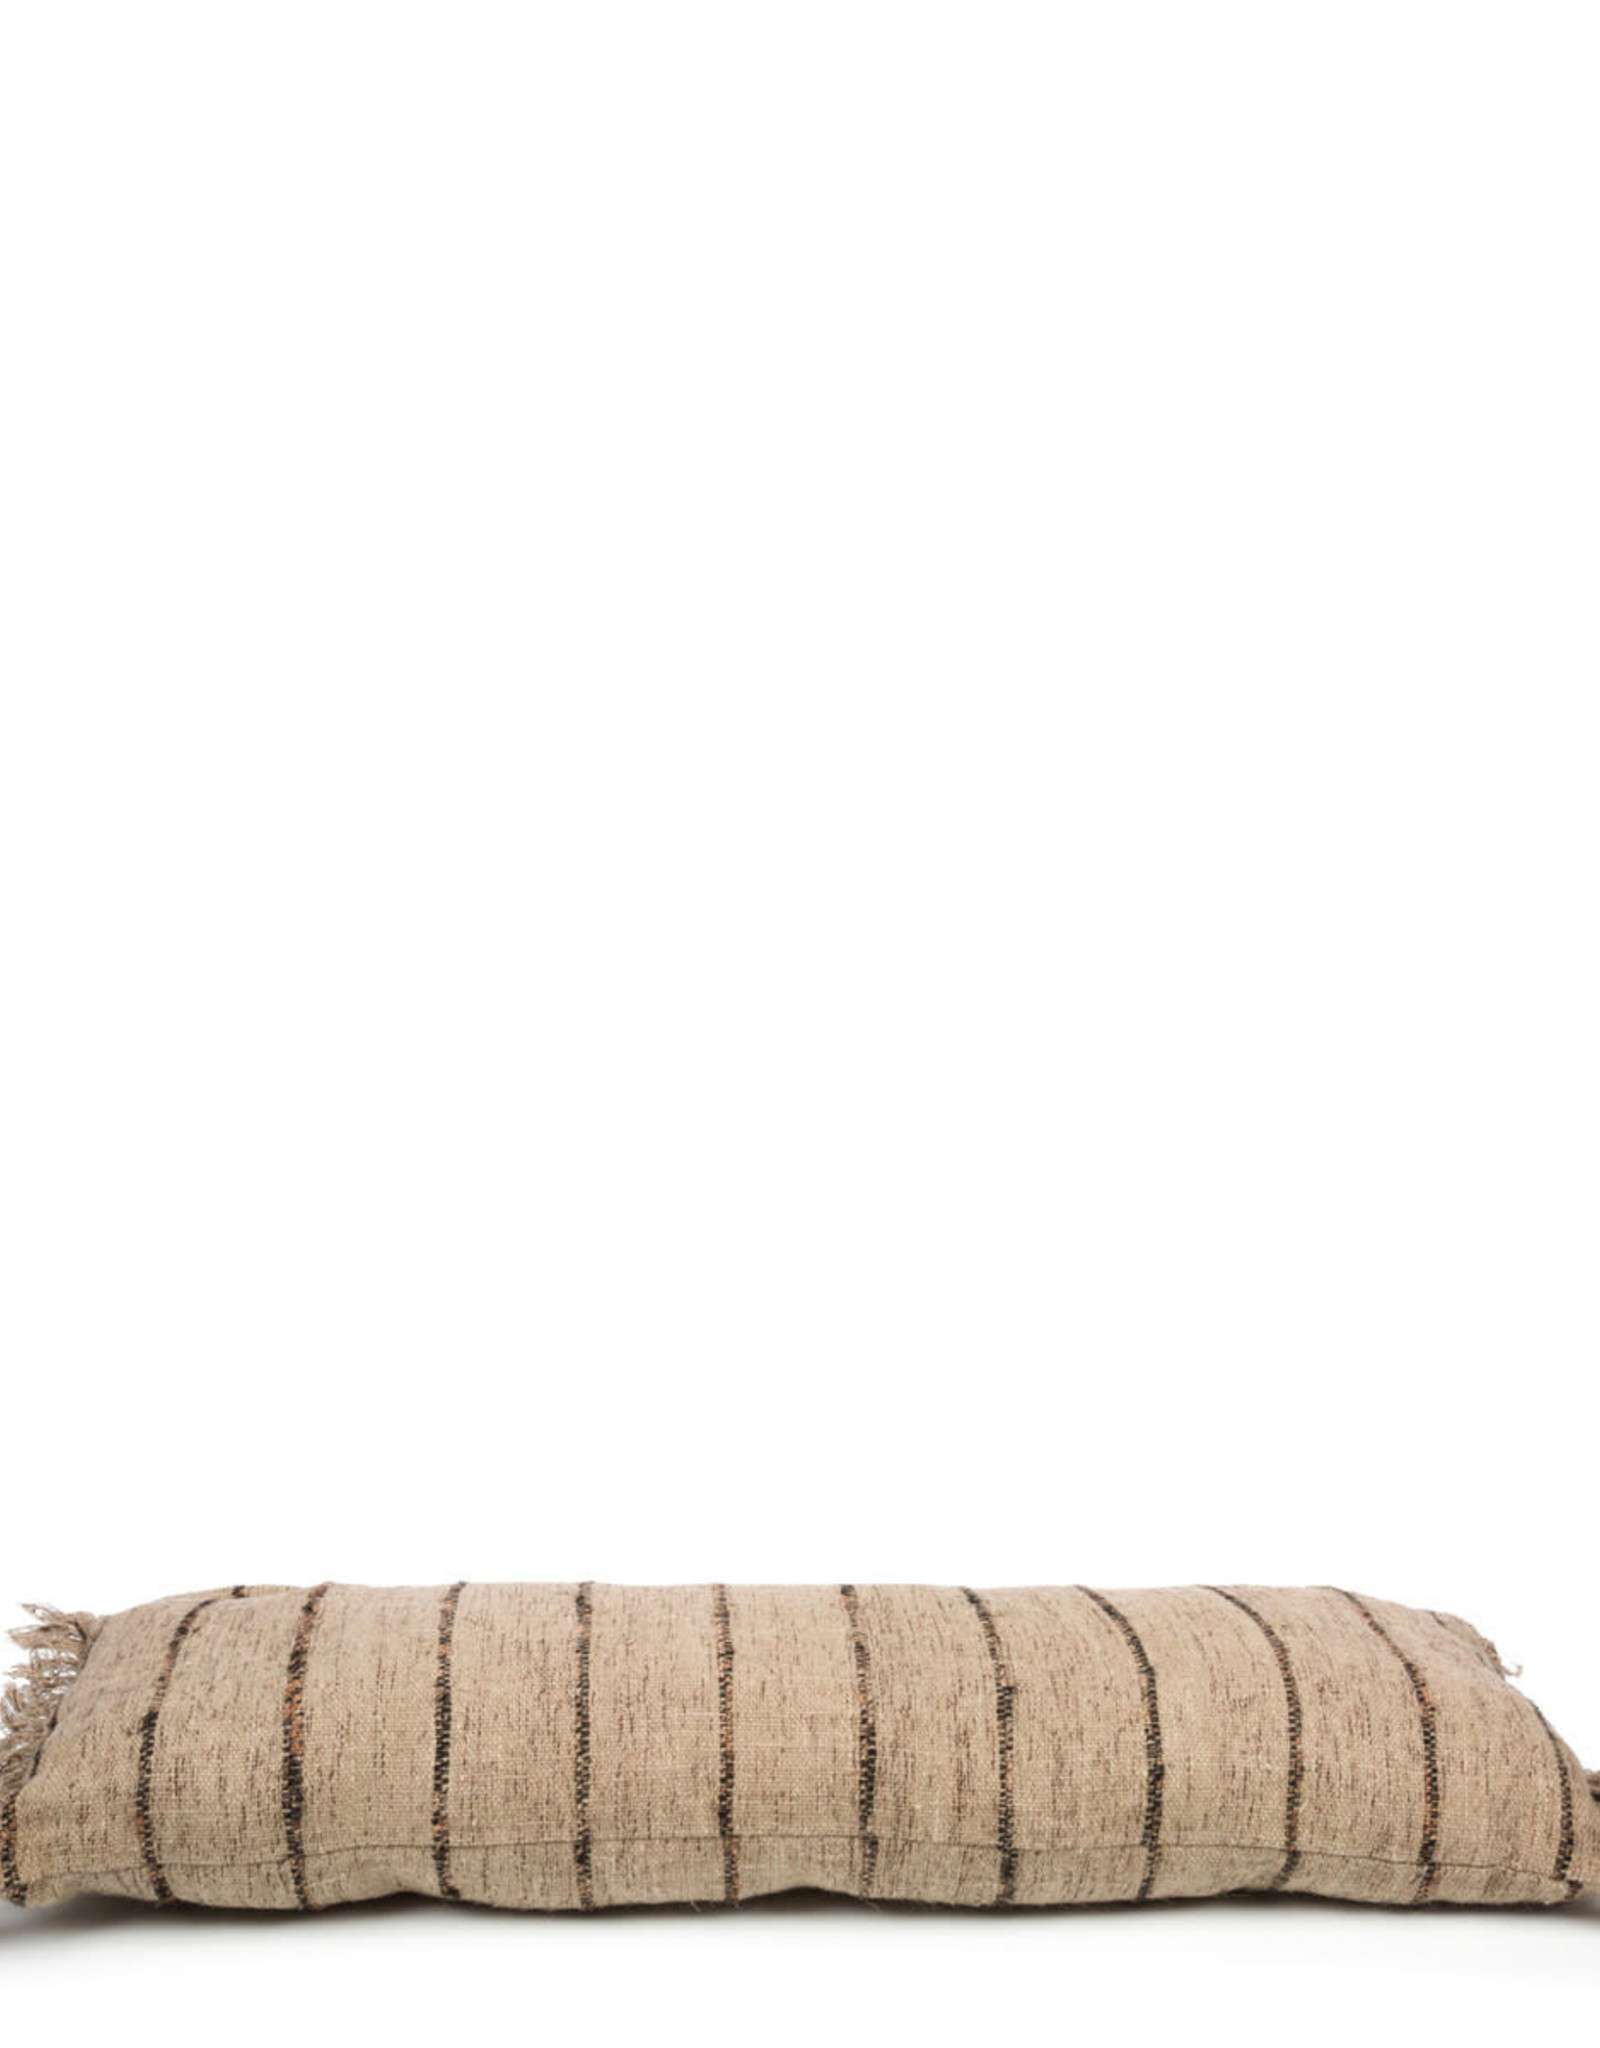 Bazar Bizar The Oh My Gee Cushion - Beige Black 35x100